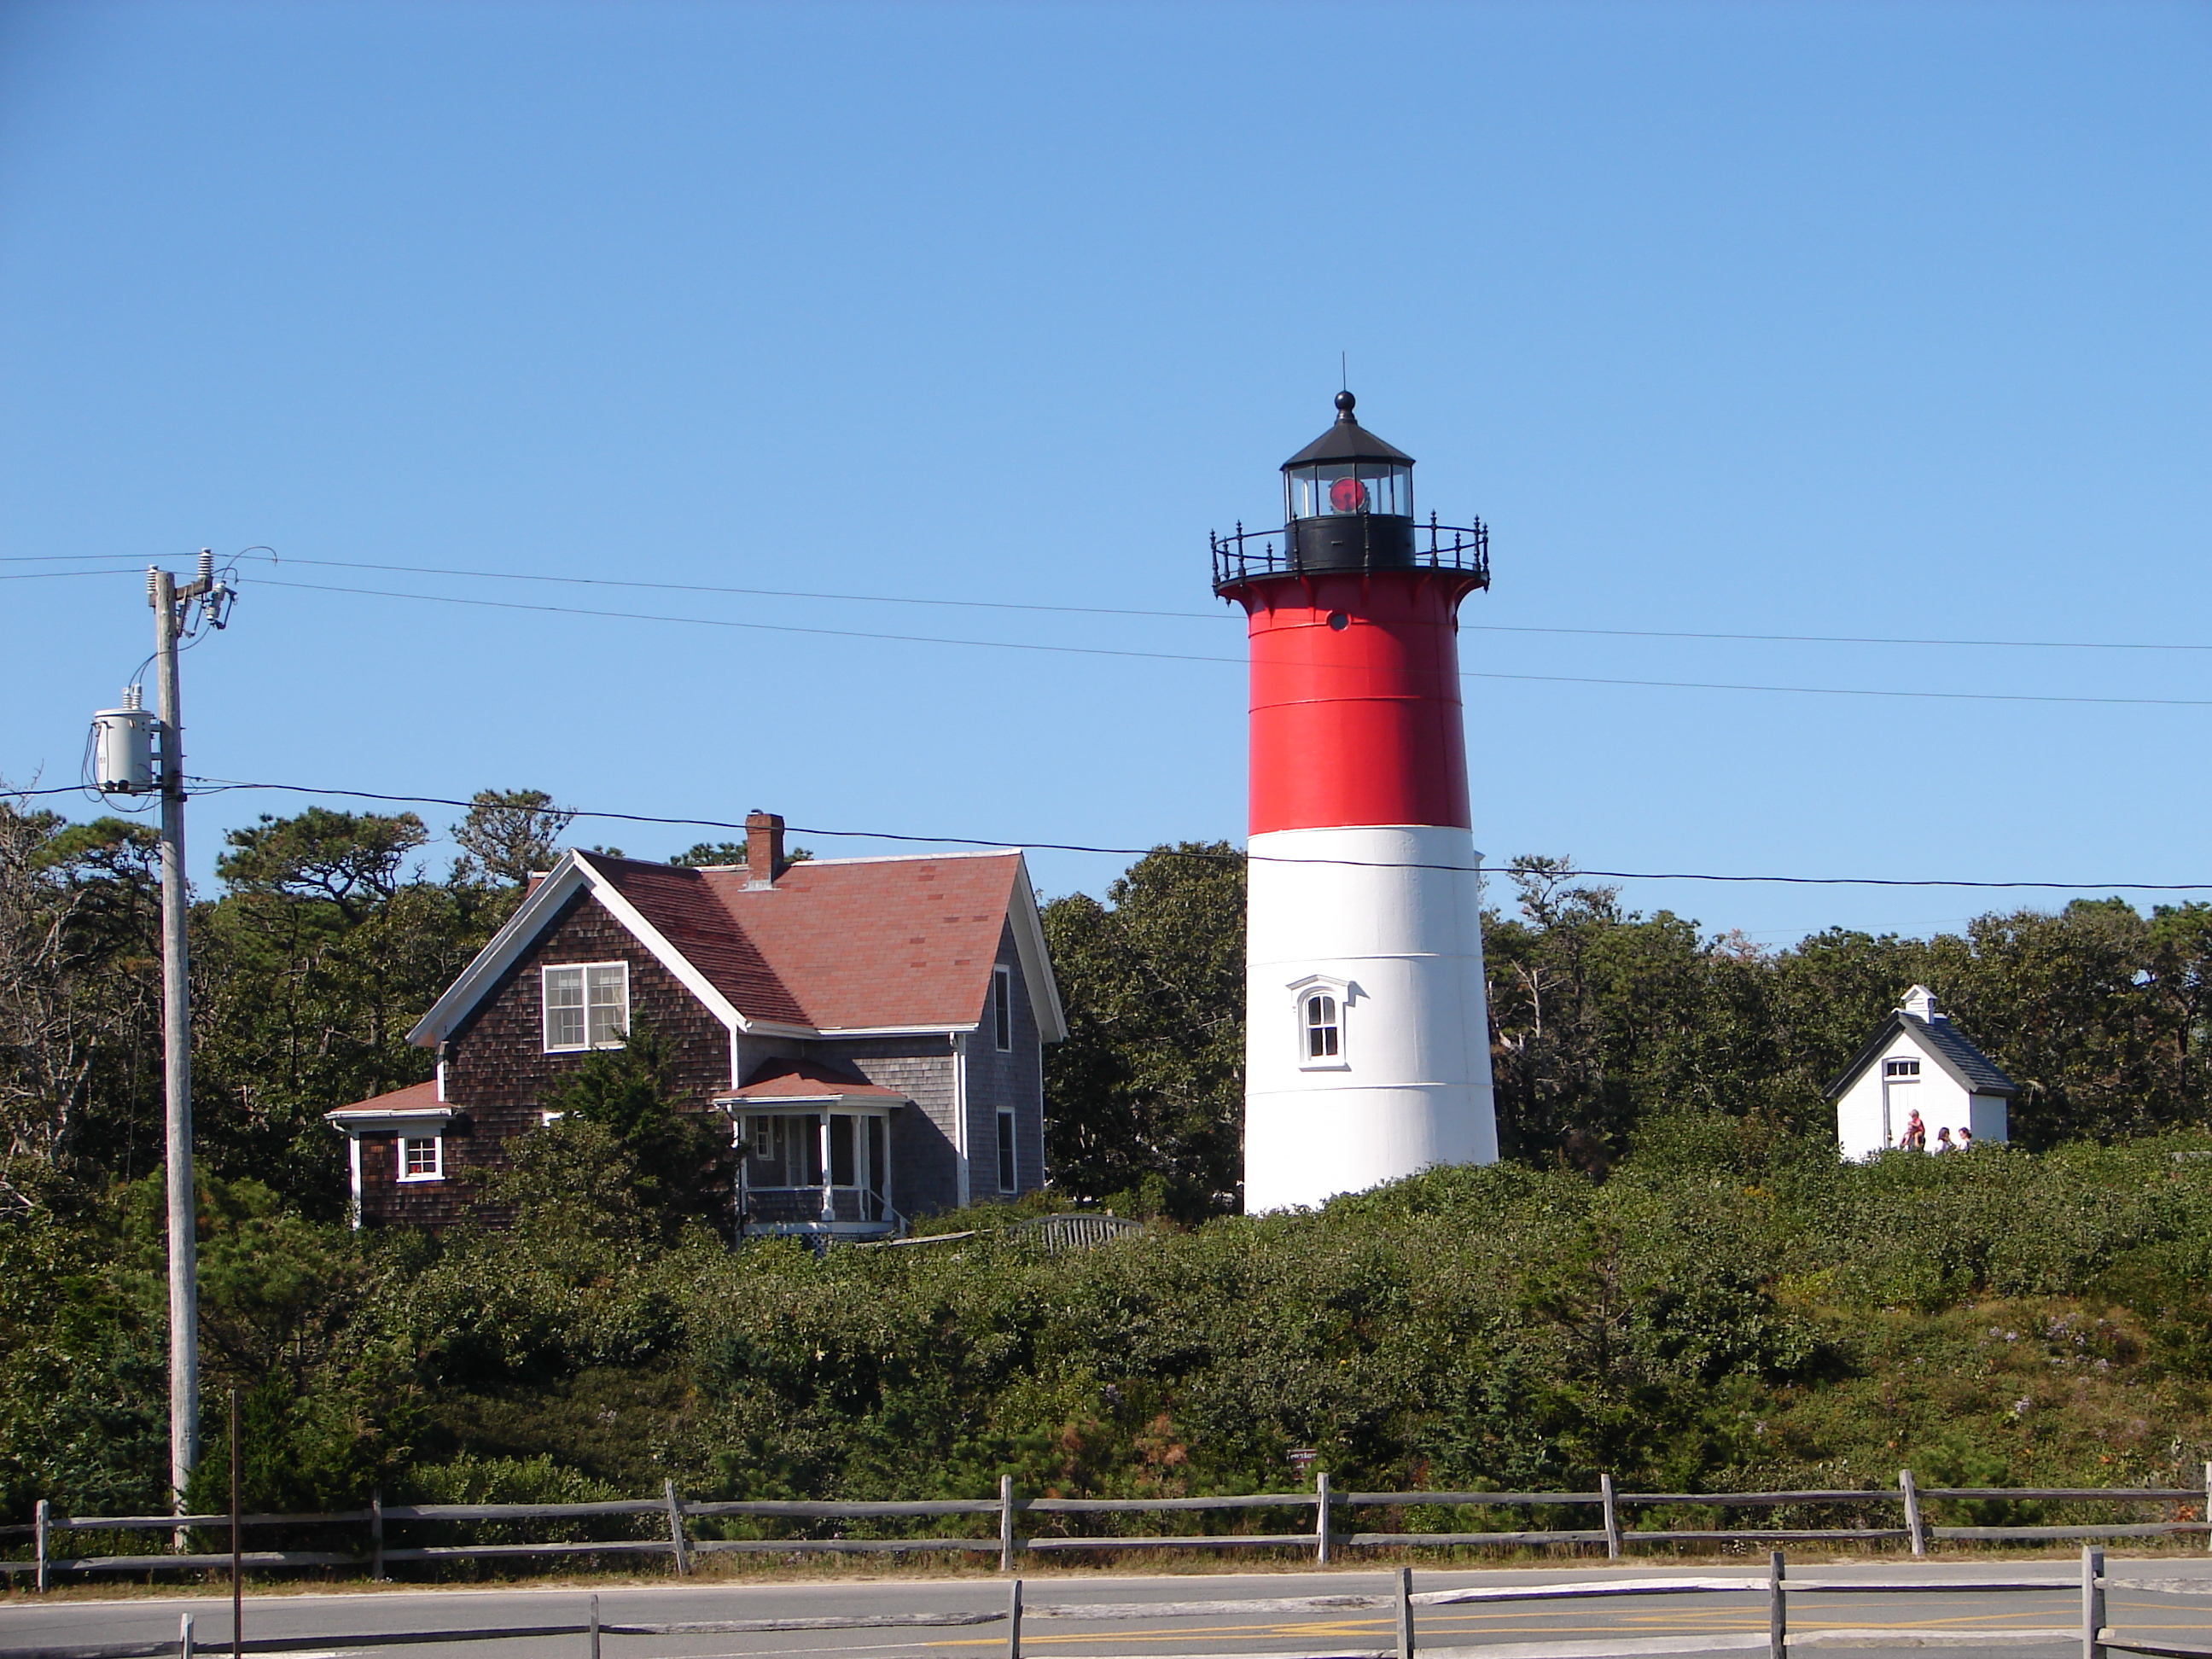 Nauset Light showing its red light (the light alternately flashes red and white every 5 seconds).  The light's oil house (built in 1892, where fuel to illuminate the light was stored prior to the light's electrification) is visible to the right.